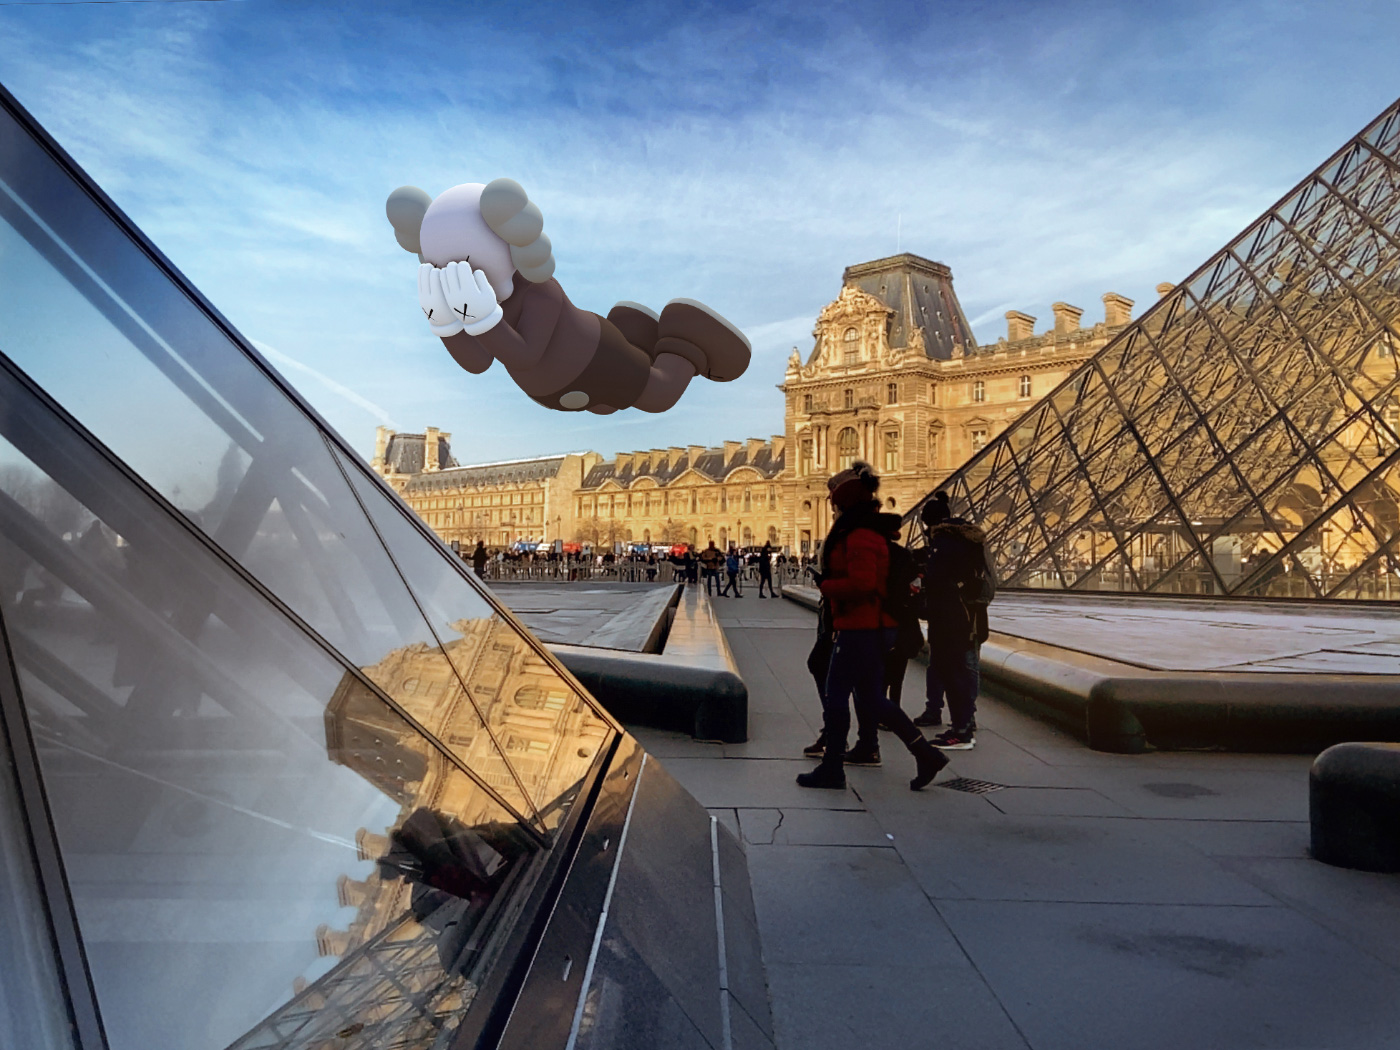 A KAWS bear floating above buildings and two people